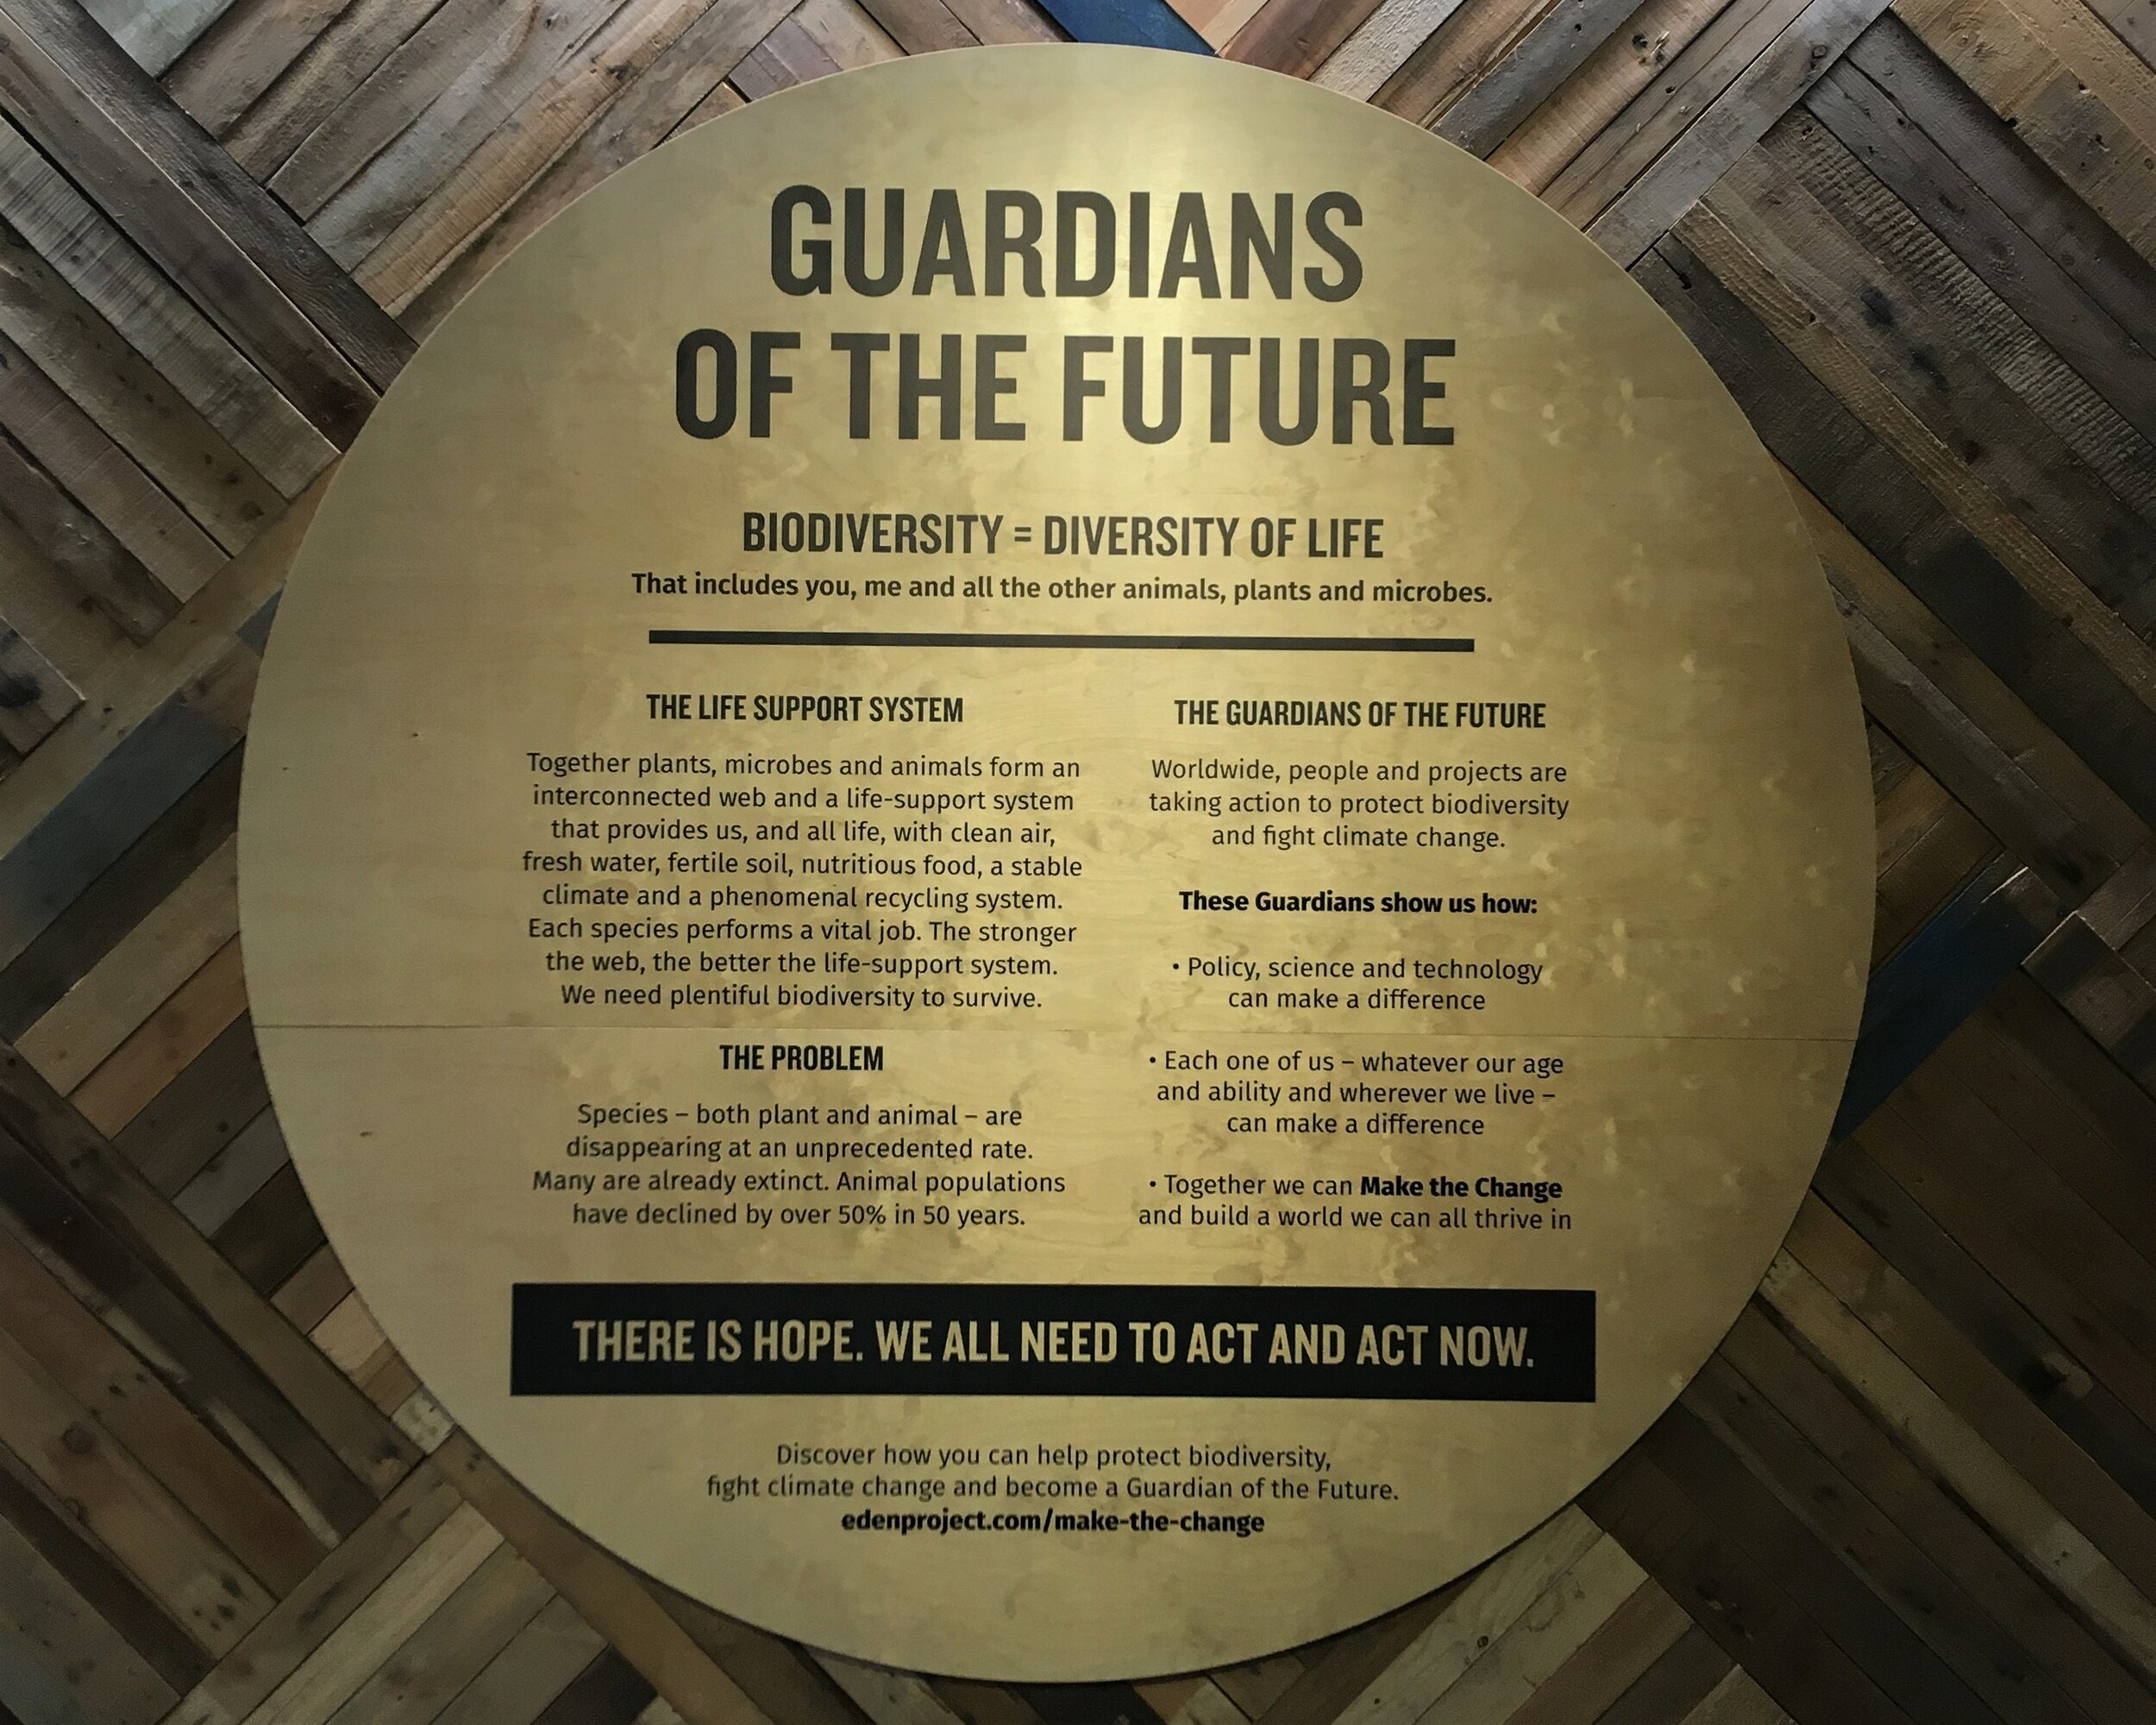 guardians of the future.jpg